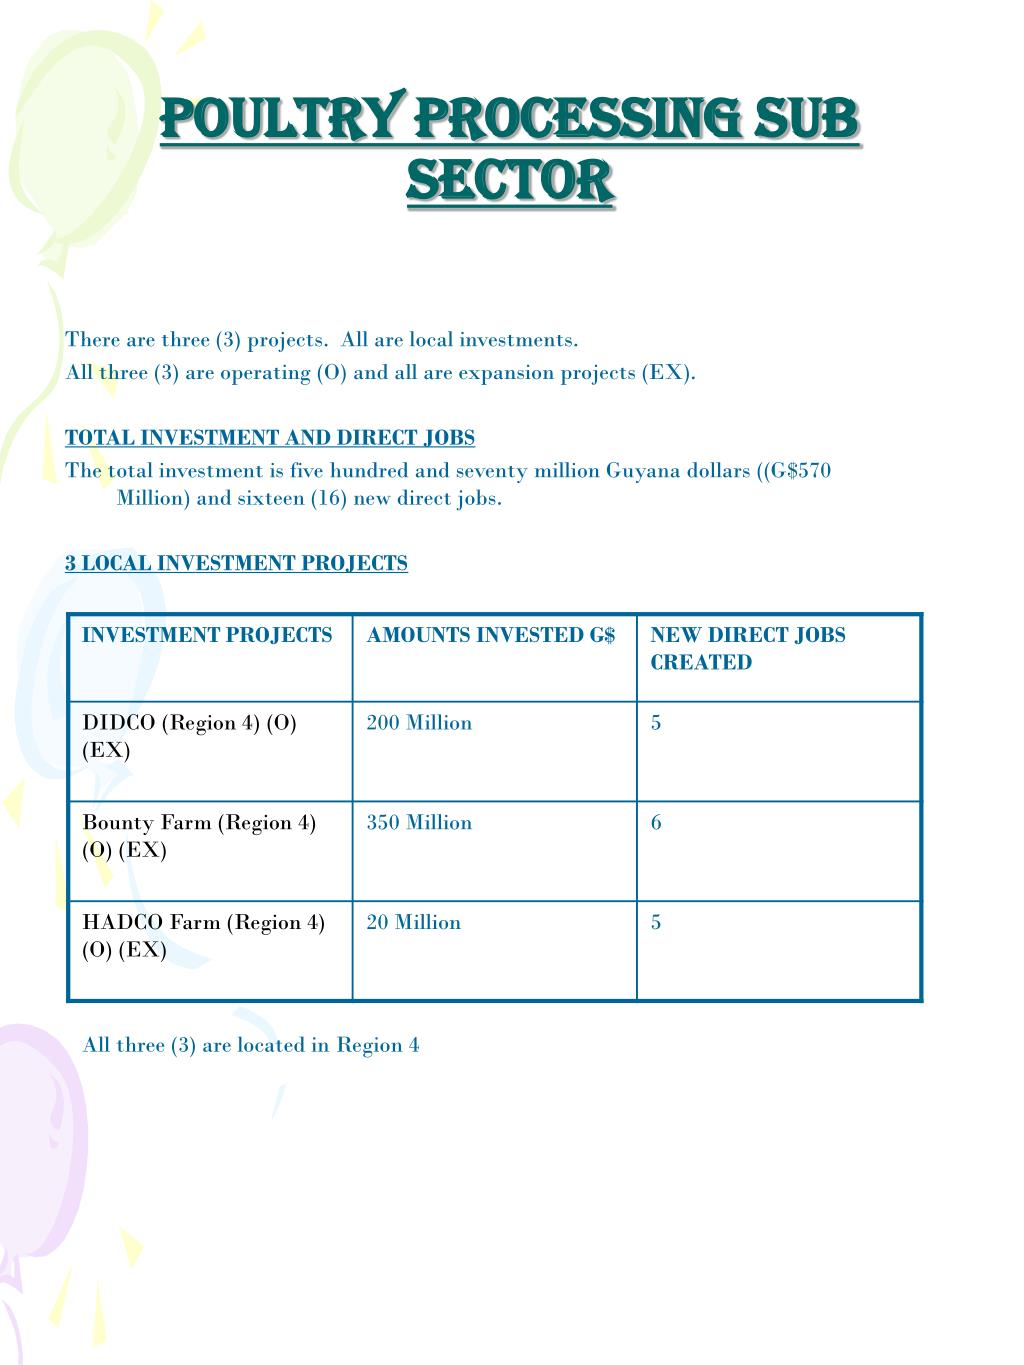 POULTRY PROCESSING SUB SECTOR